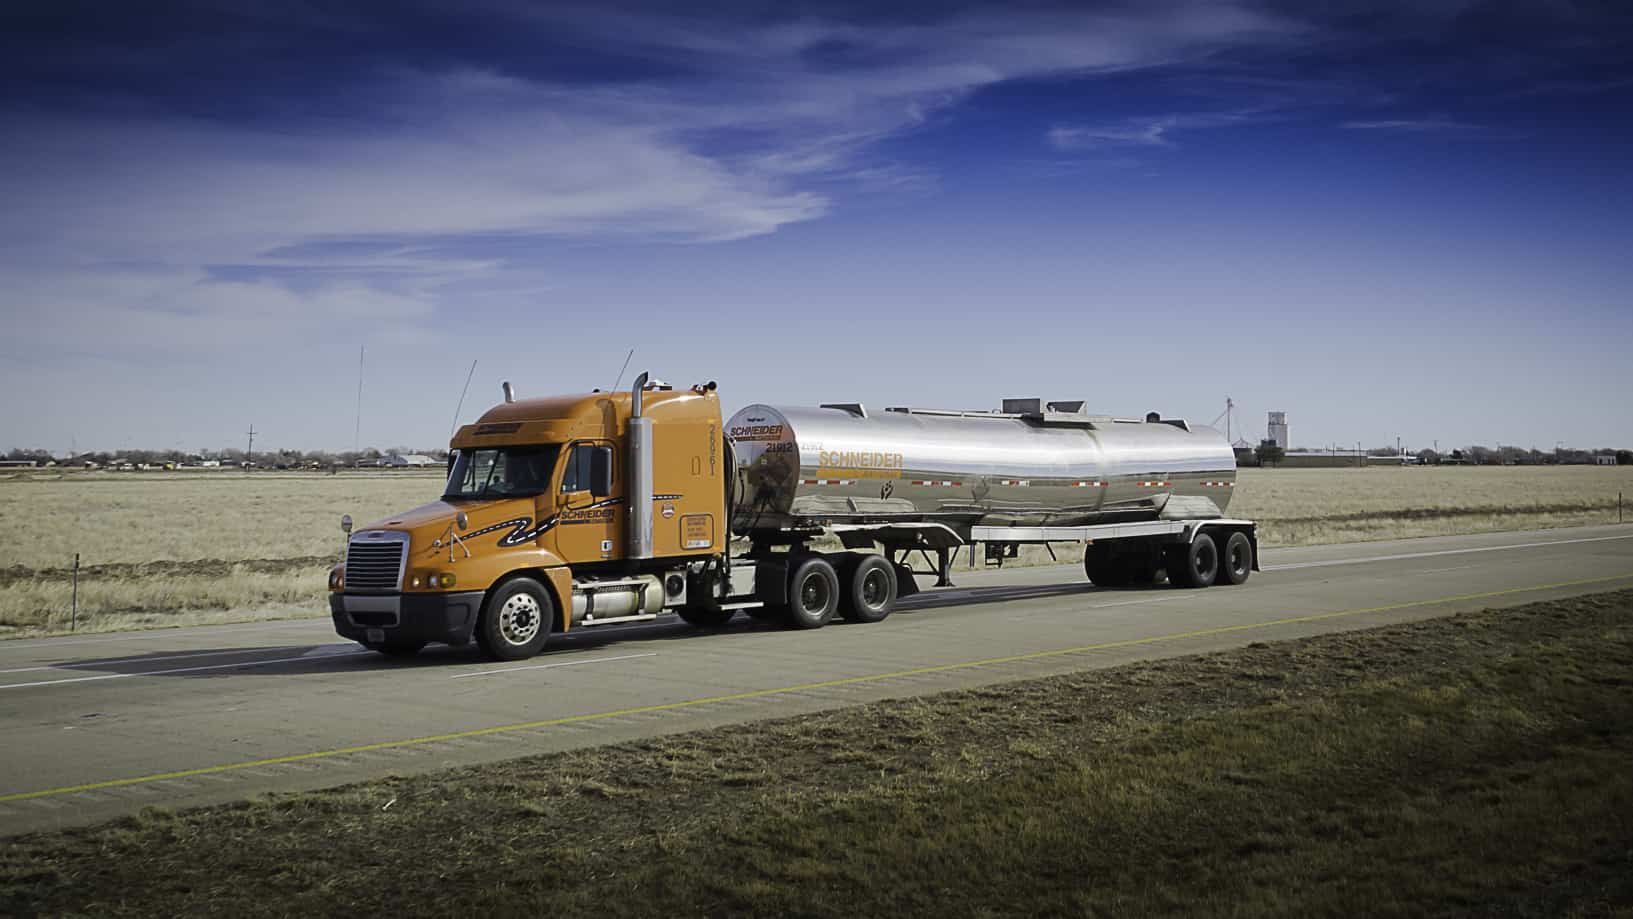 The Permian Basin's demand for crude oil tanker trucks could